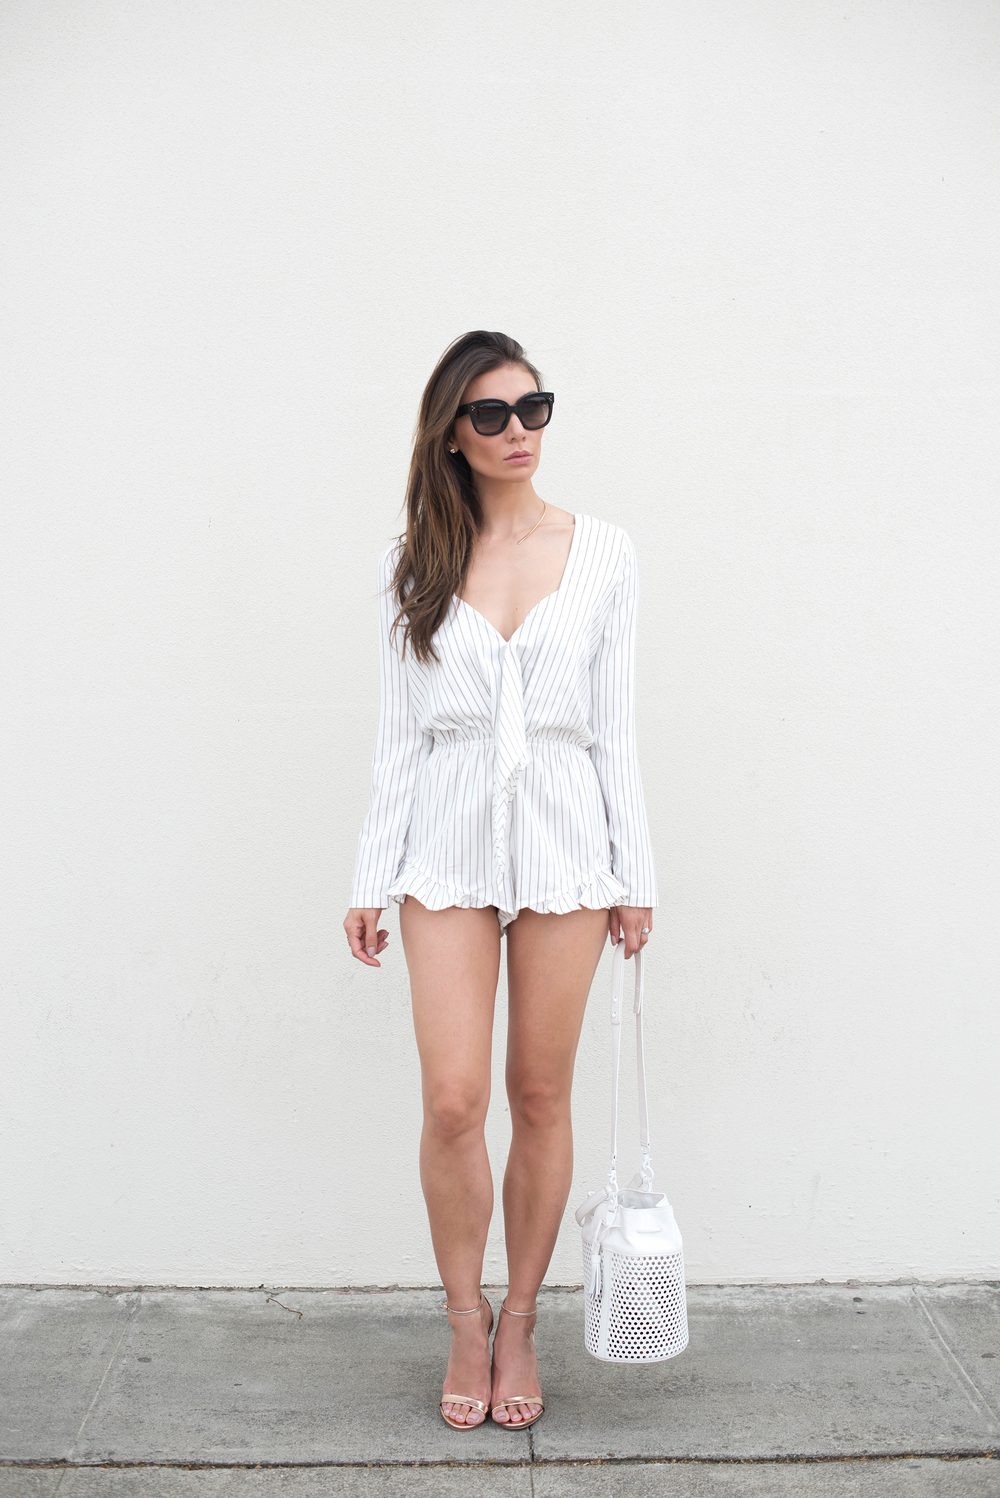 ROMPER. BAG (now on sale). SHOES. SUNGLASSES. NECKLACE.